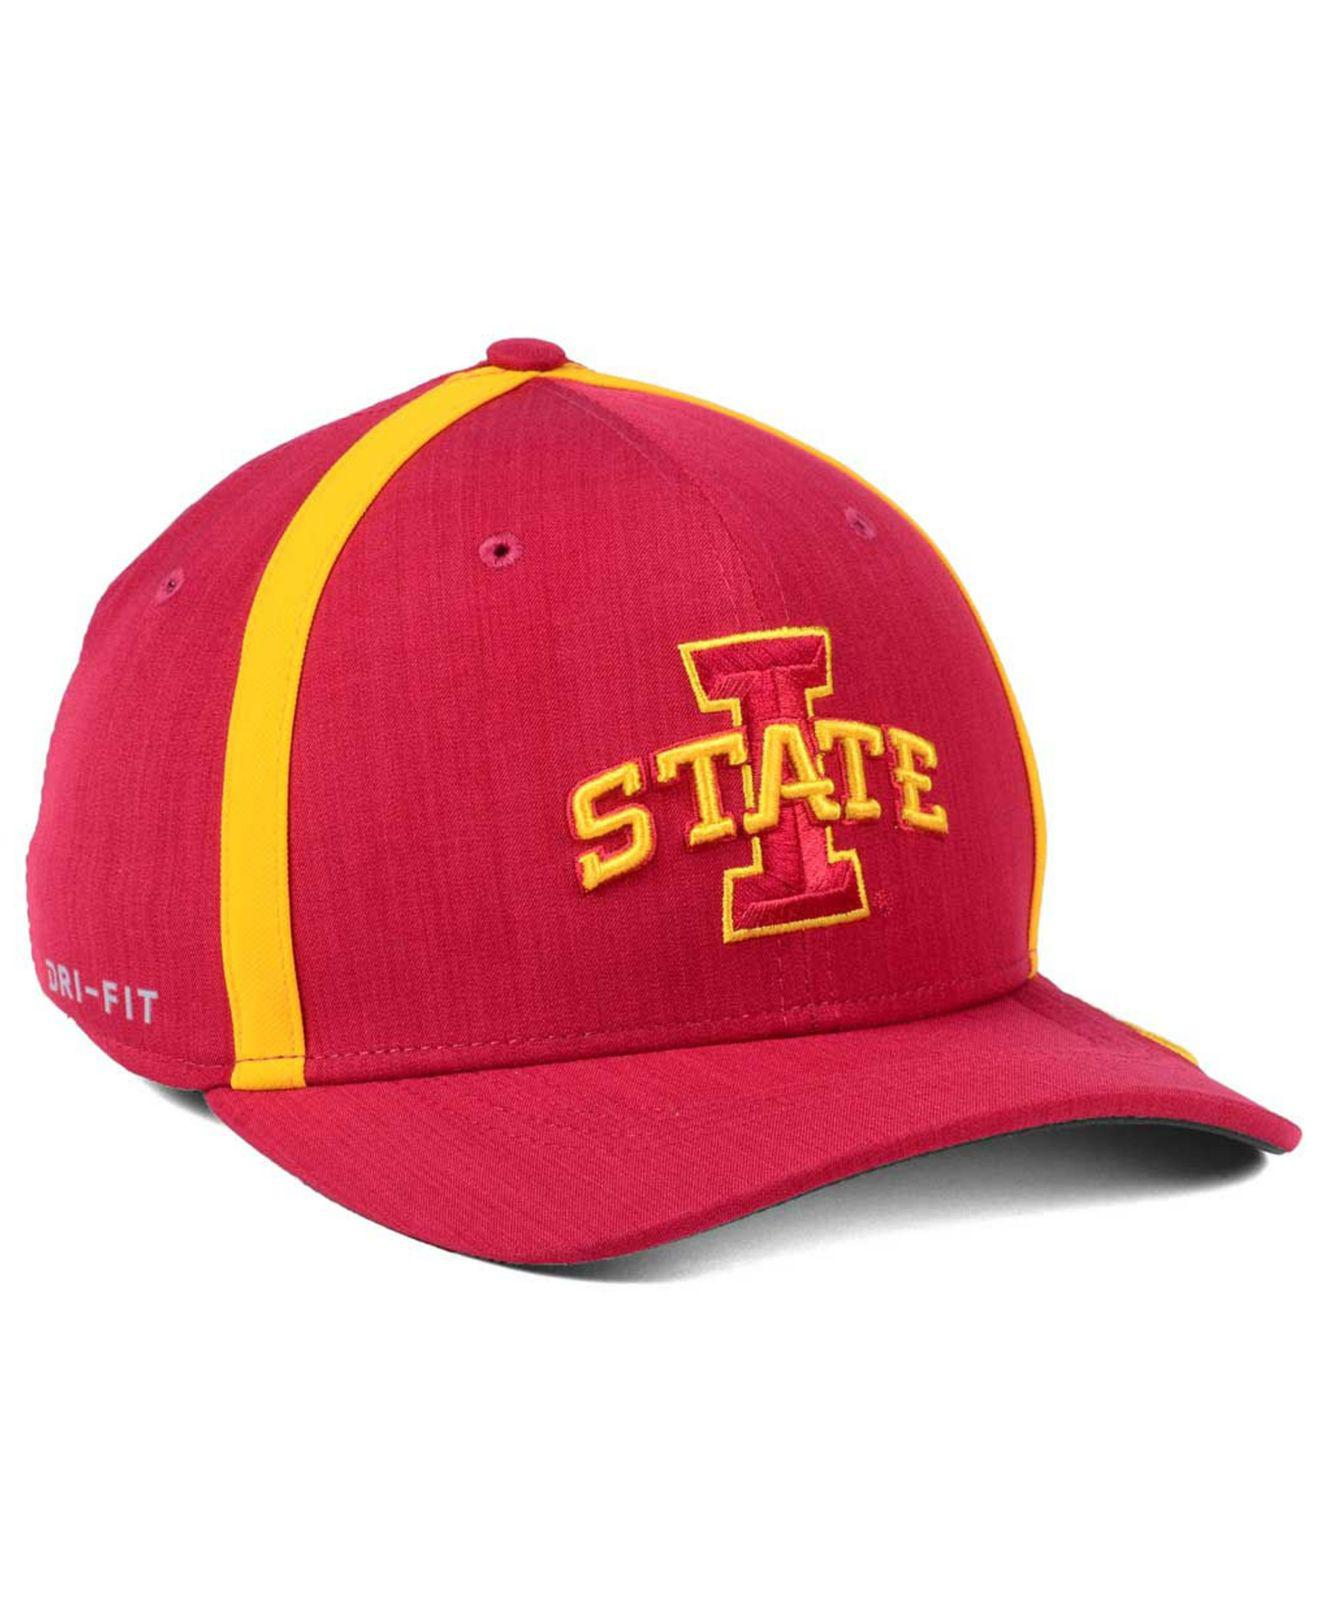 factory price 3a4f9 ed7f1 Lyst - Nike Aerobill Classic Sideline Swoosh Flex Cap in Red for Men